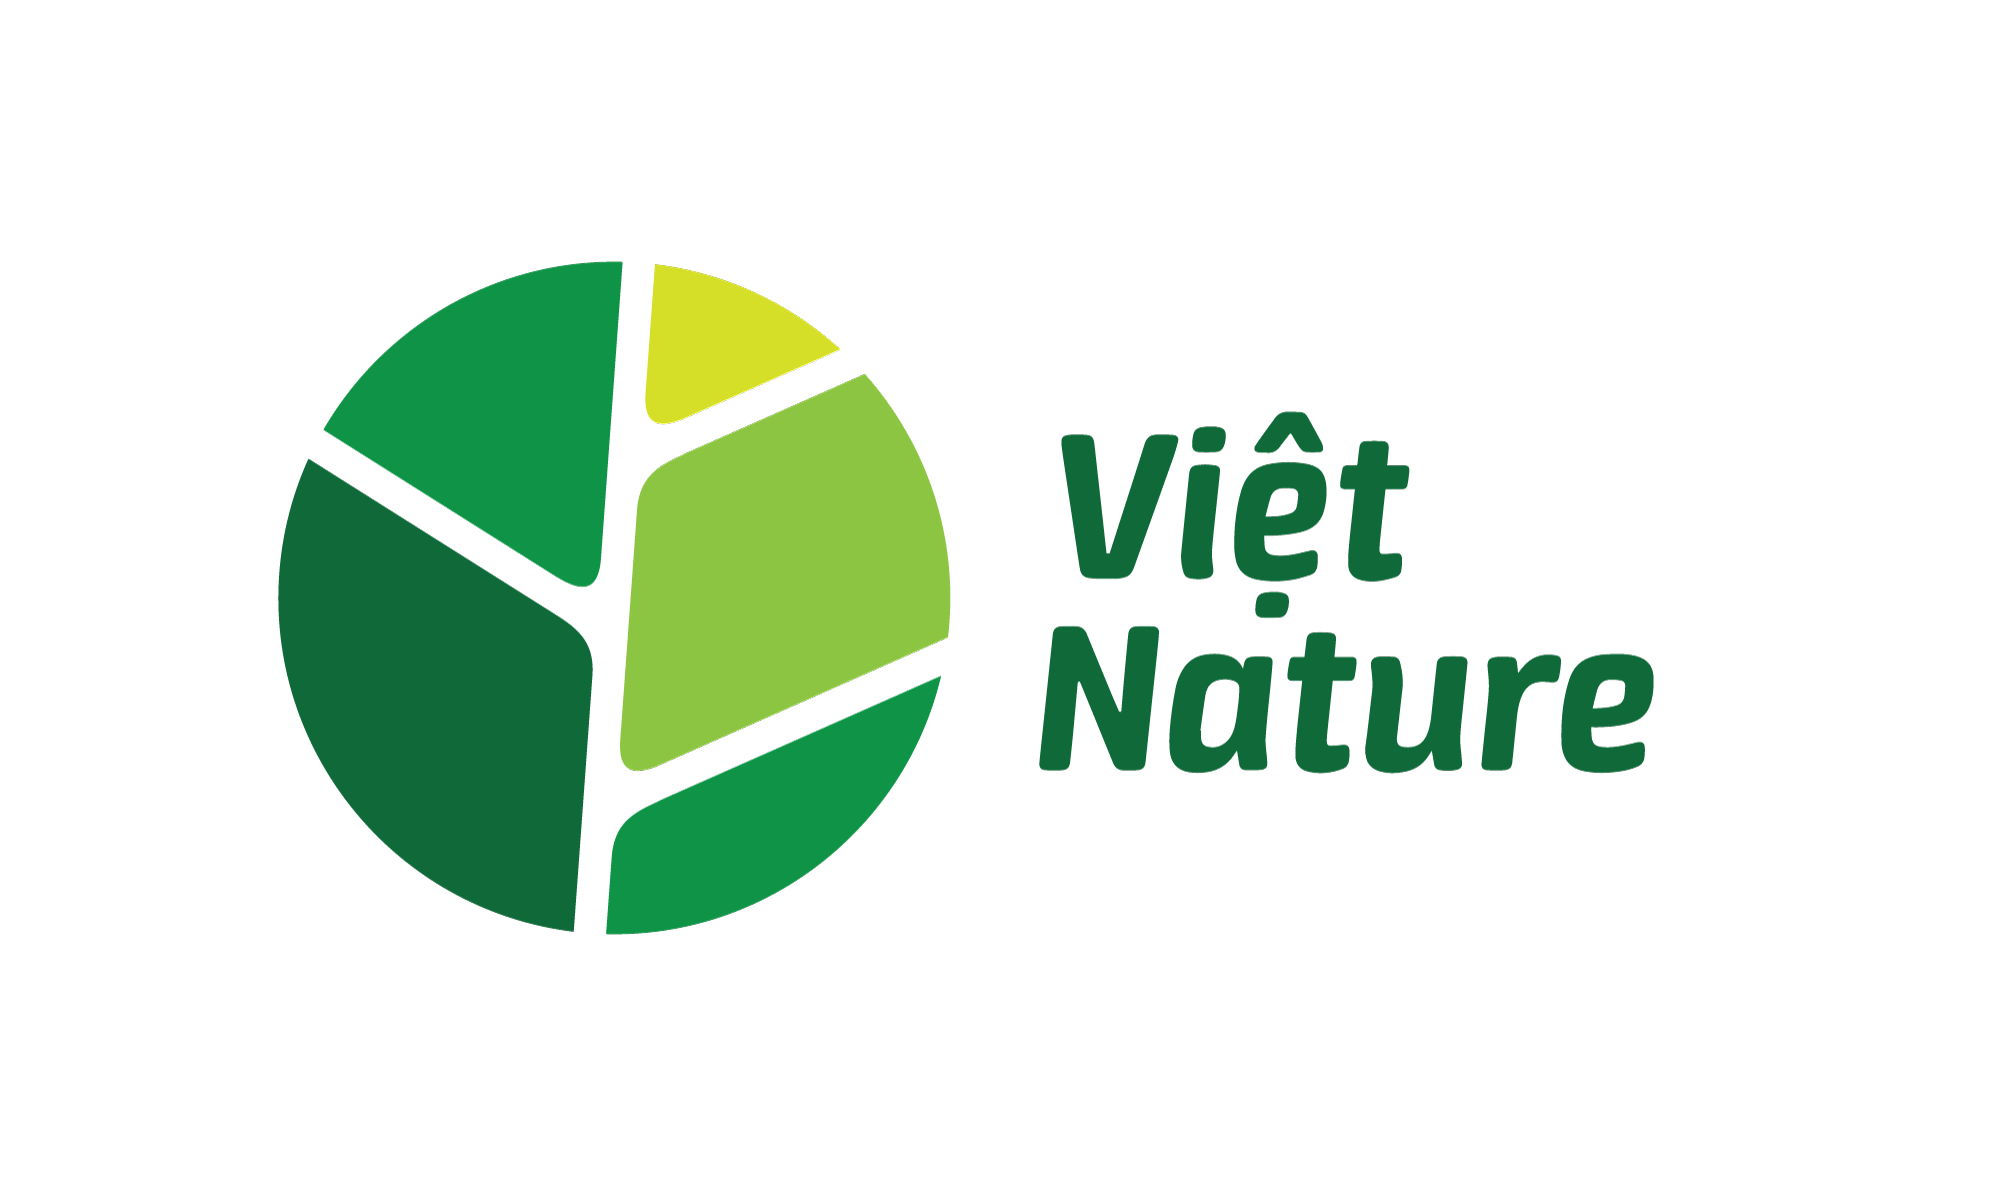 viet_nature_logotype_color_on_white